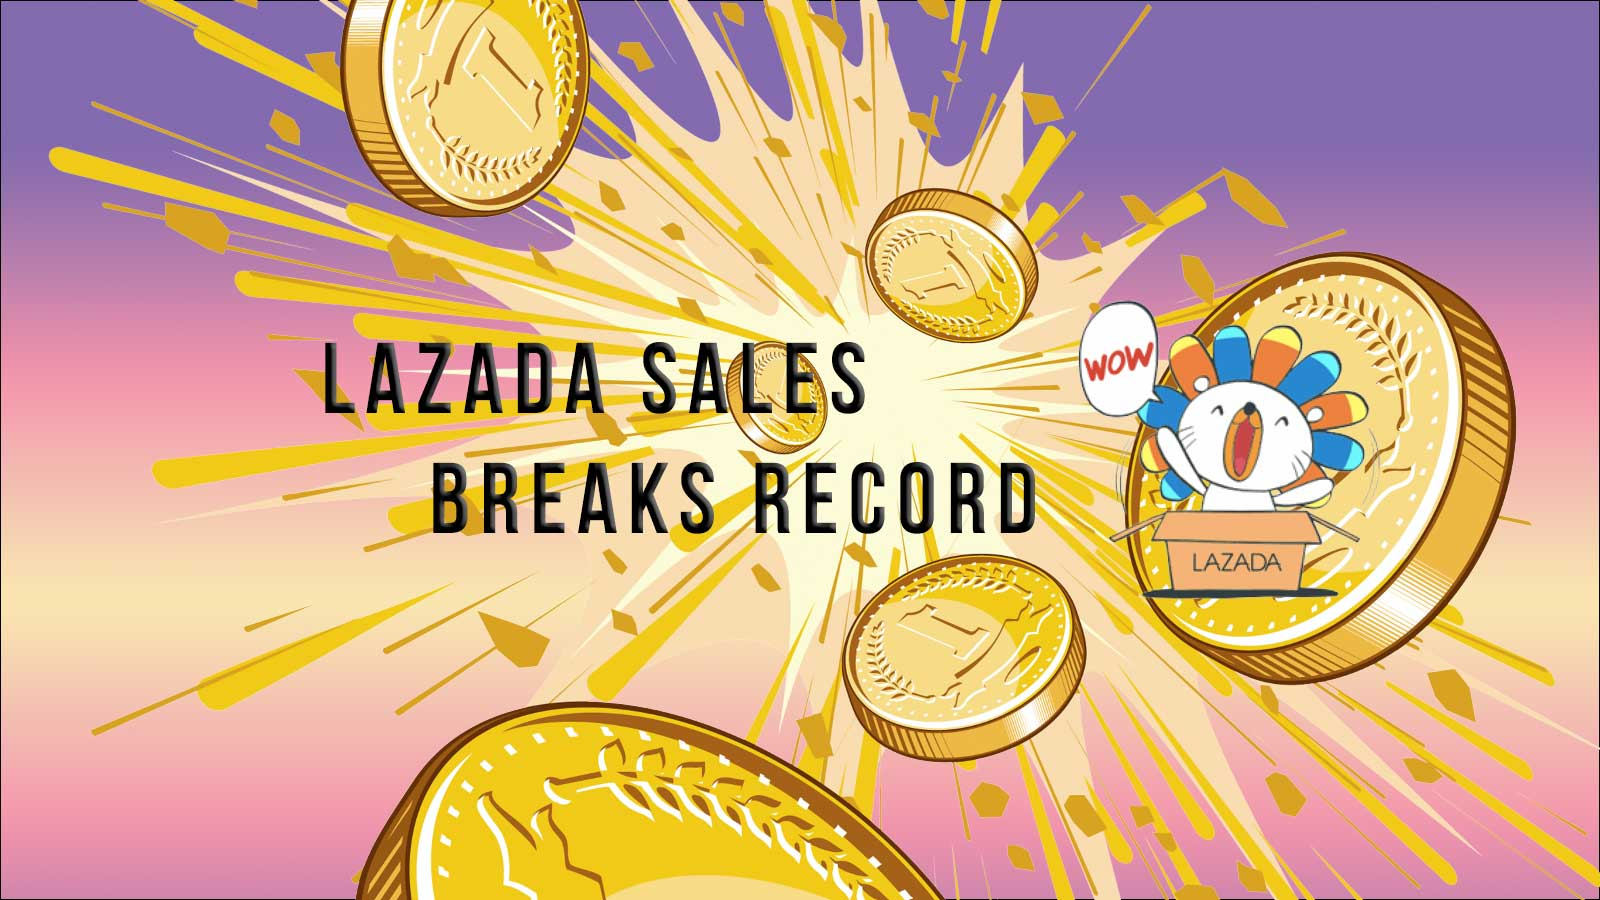 Lazada's Online Revolution Breaks Record with 100,000 Items in 9 Hours